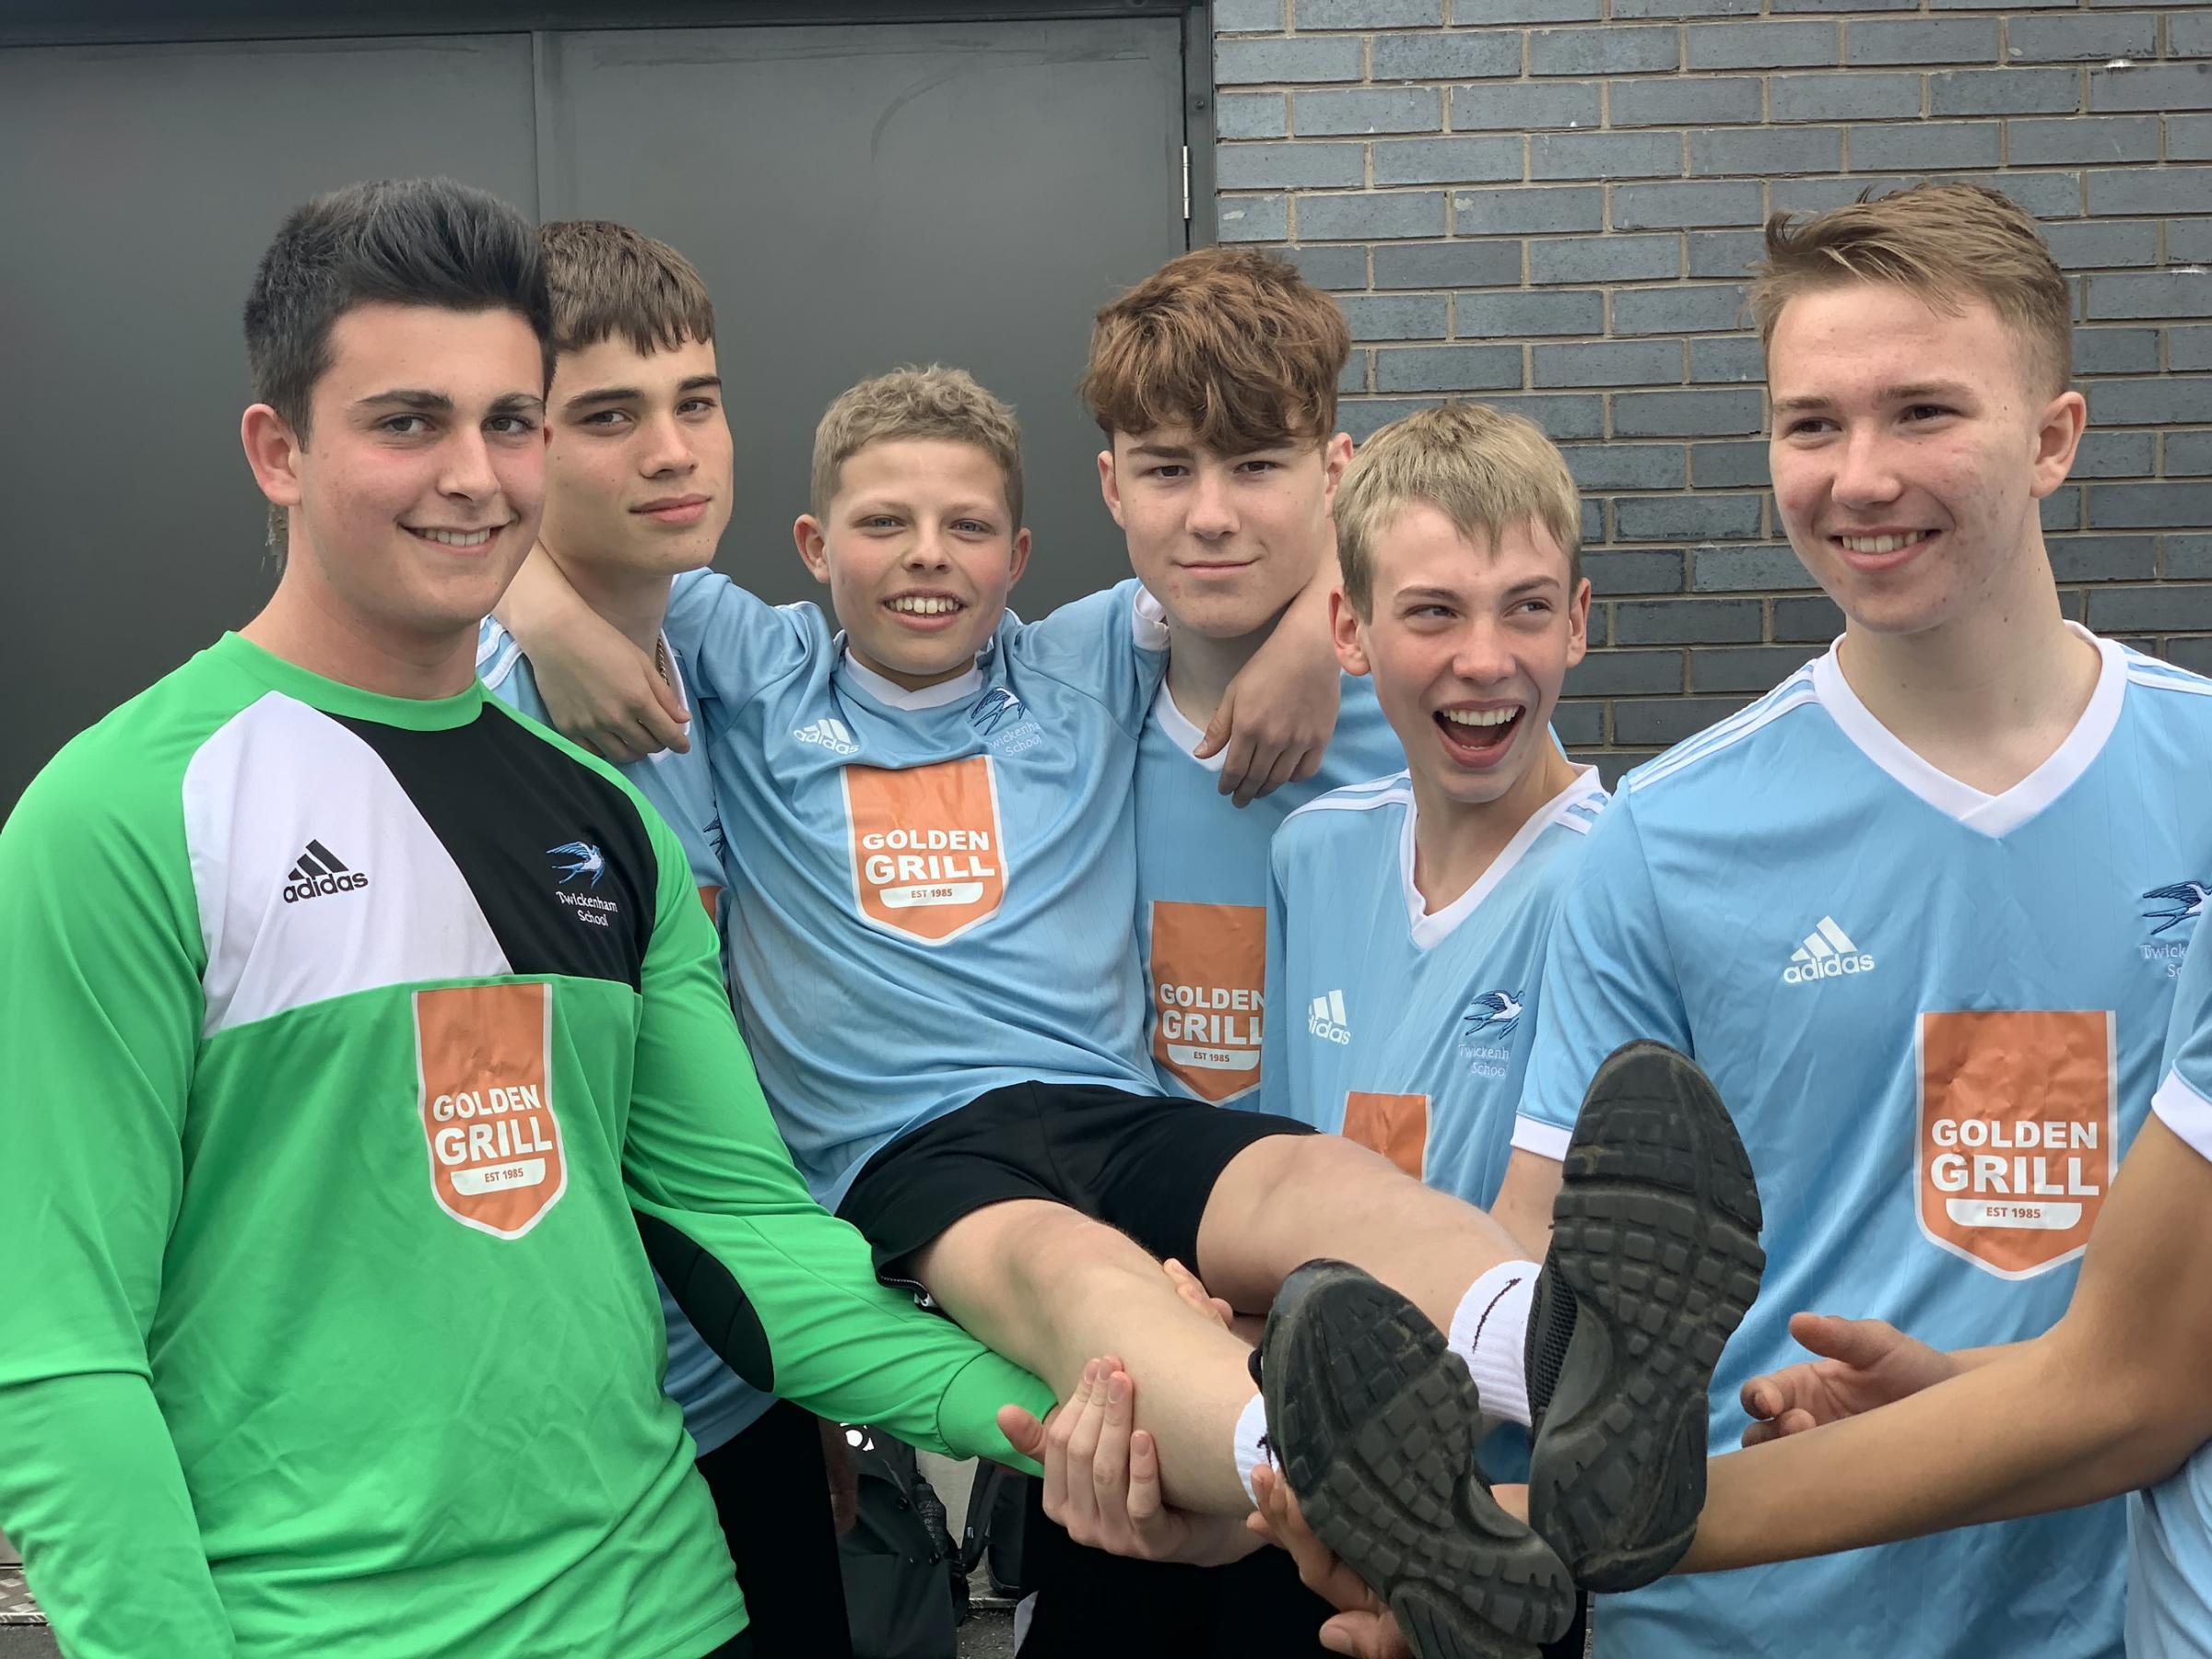 Aston Nunn being held up by his team mates in the Twickenham School Year 11 Boys Football team after they won the Richmond Schools cup 6-1.(l-r) Thomas Sant, Joe Hillier, Aston Nunn, Liam O�Callaghan, Lewis Phillips, Kiran Jones.See National News story NN